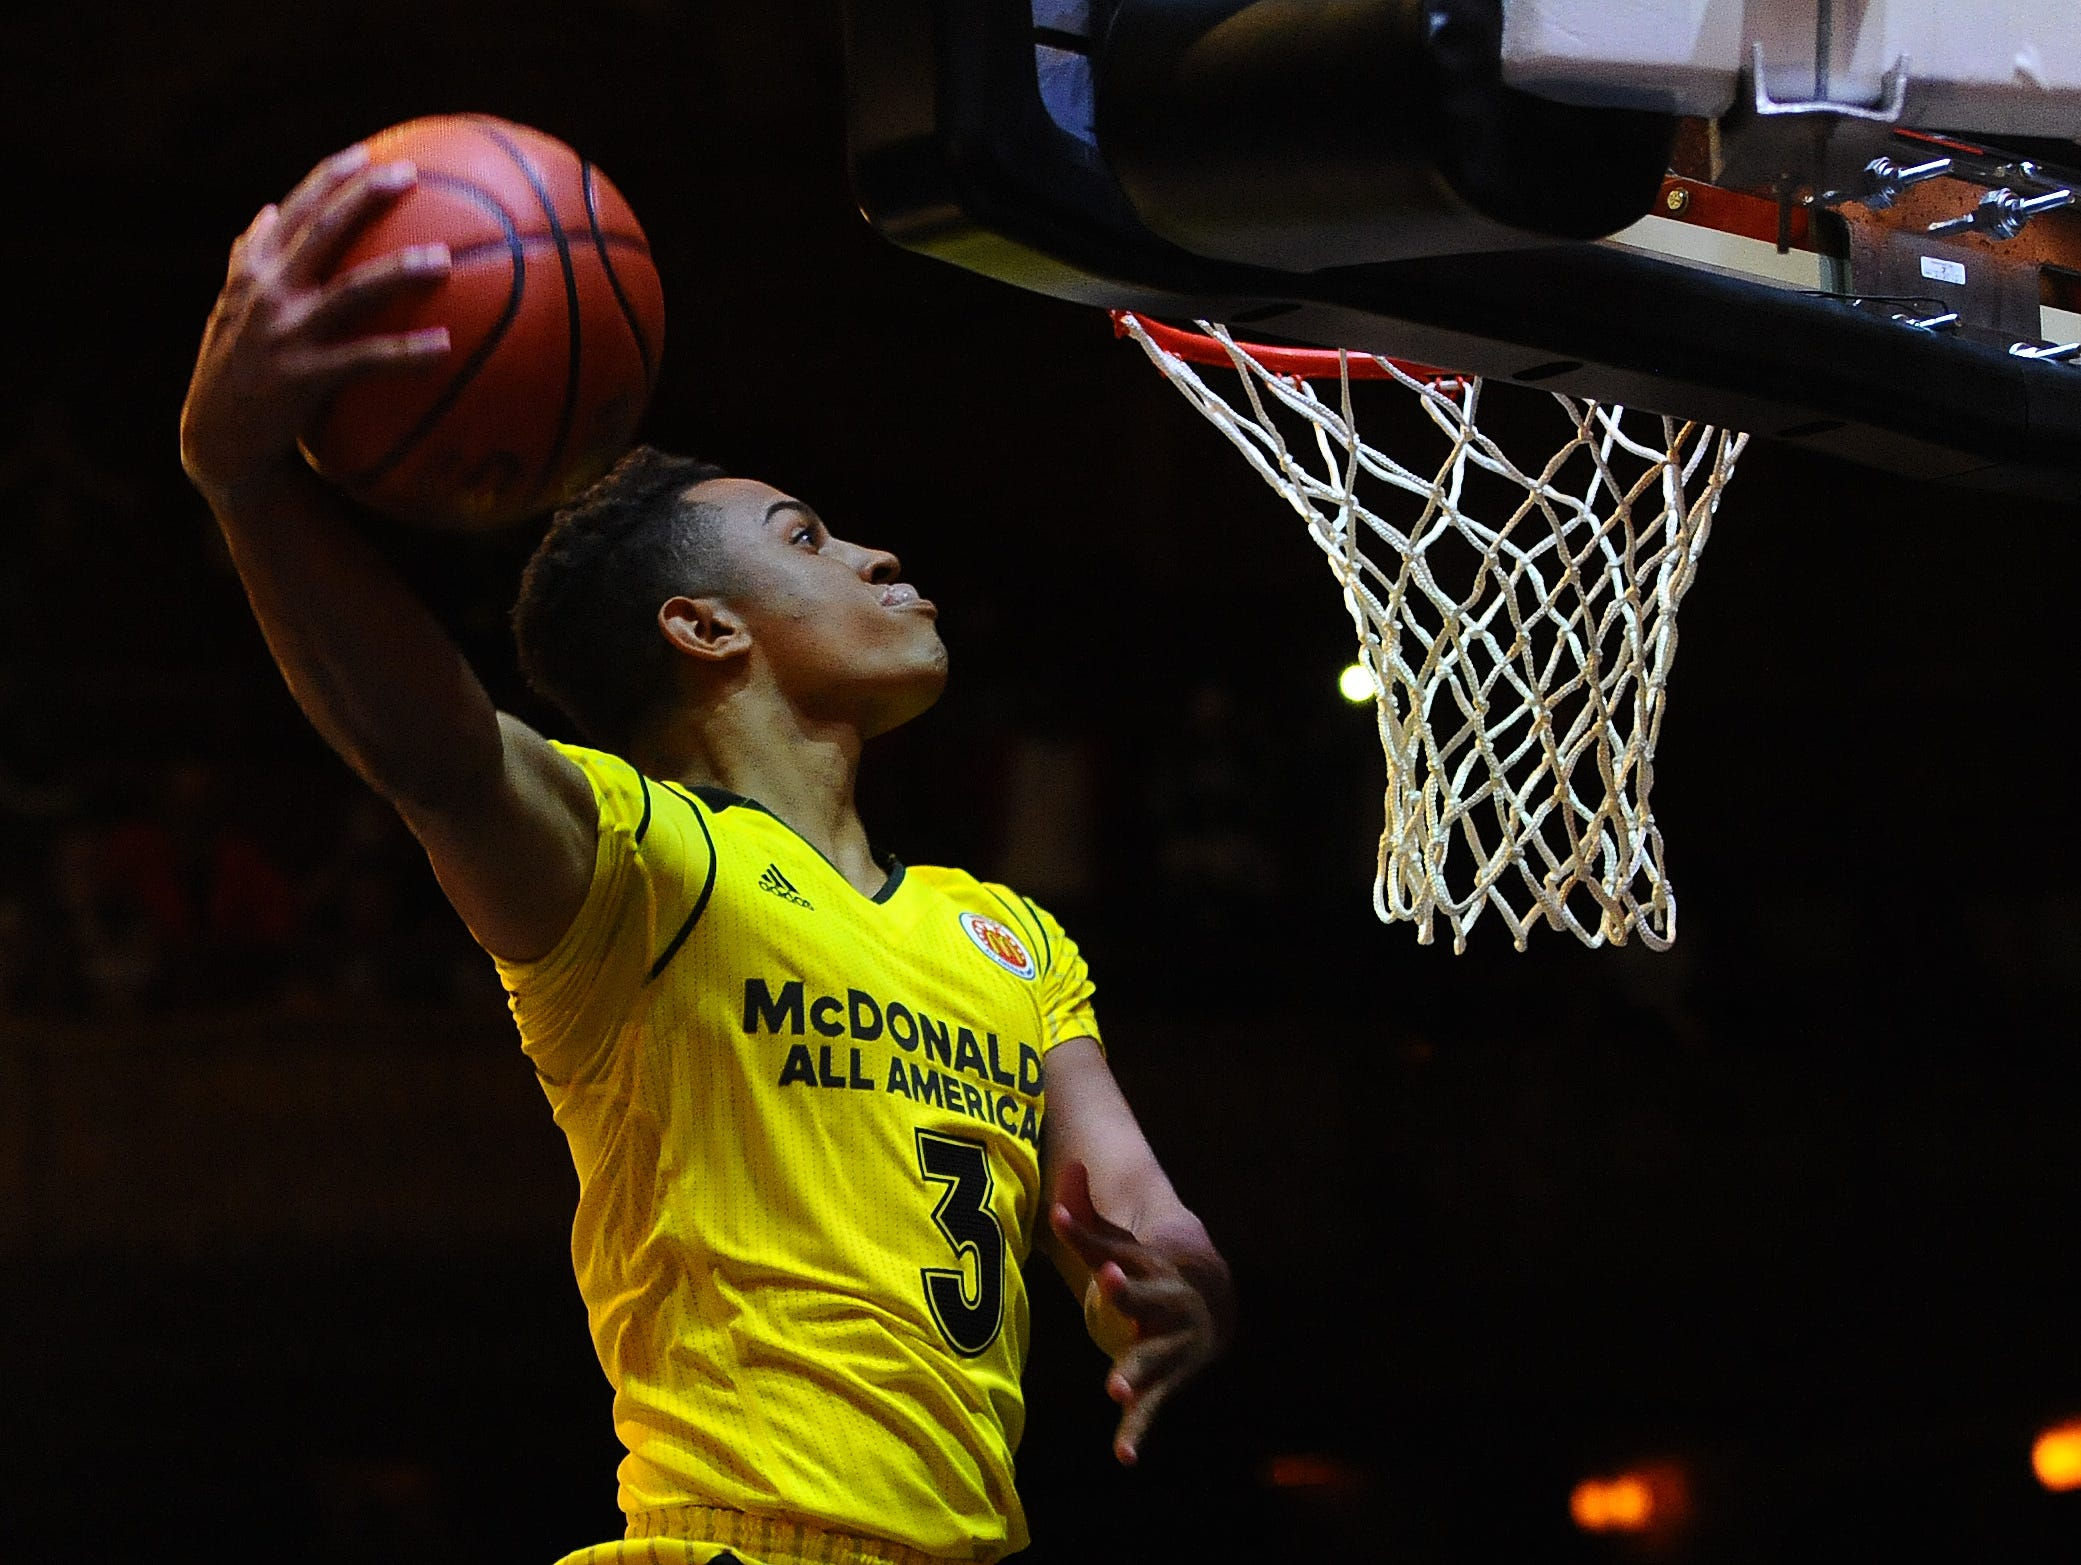 Duke recruit Frank Jackson was the Co-Most Valuable Player of Wednesday night's McDonald's All-American game in Chicago.